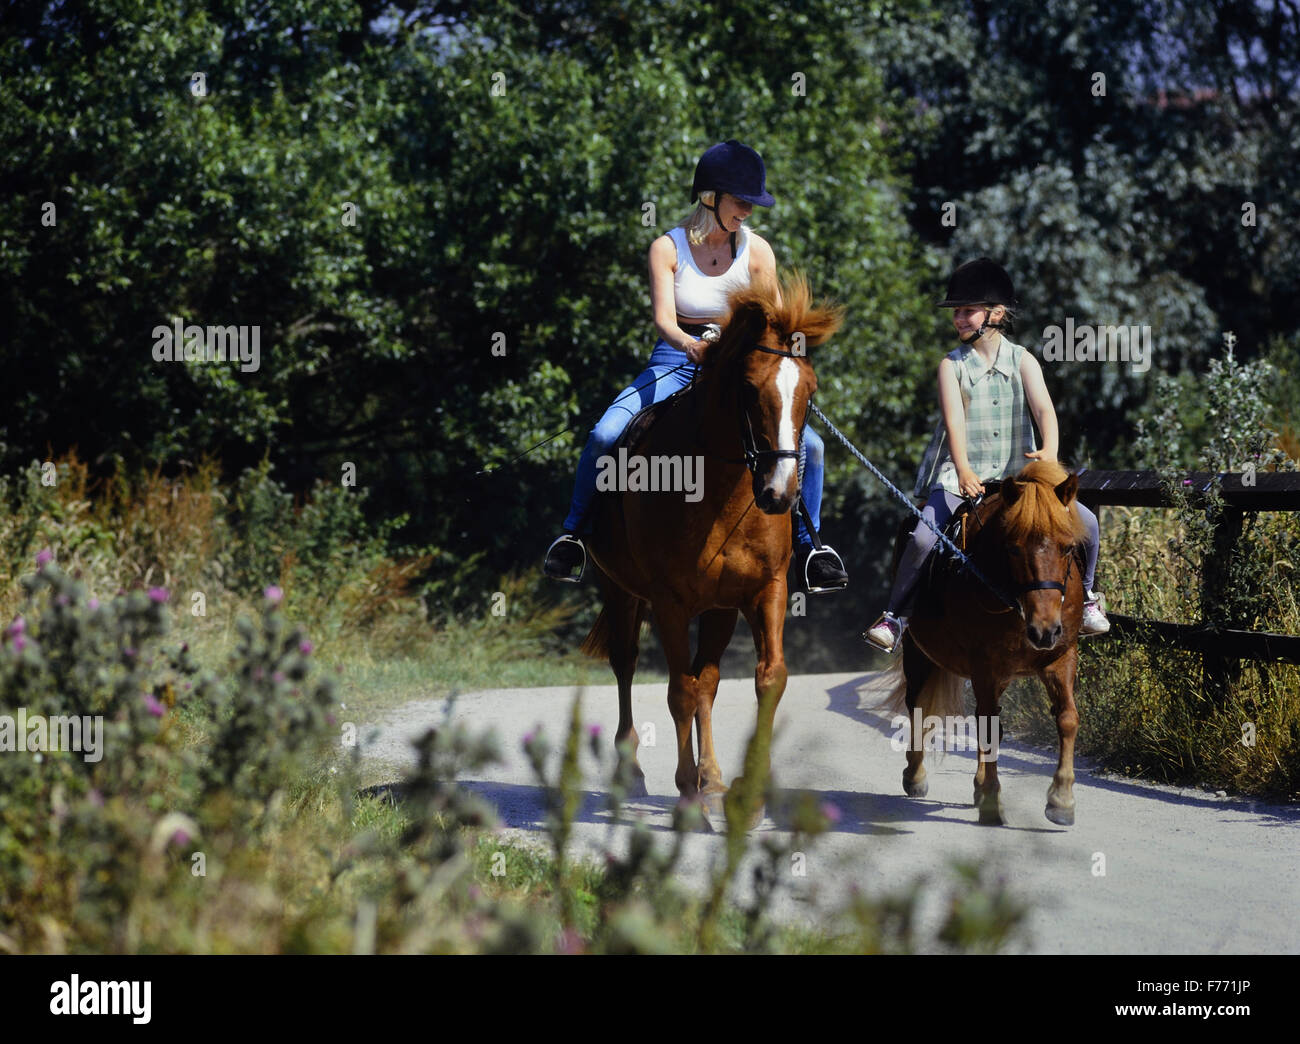 Using a lead rein to train a pony and young horse rider. UK - Stock Image